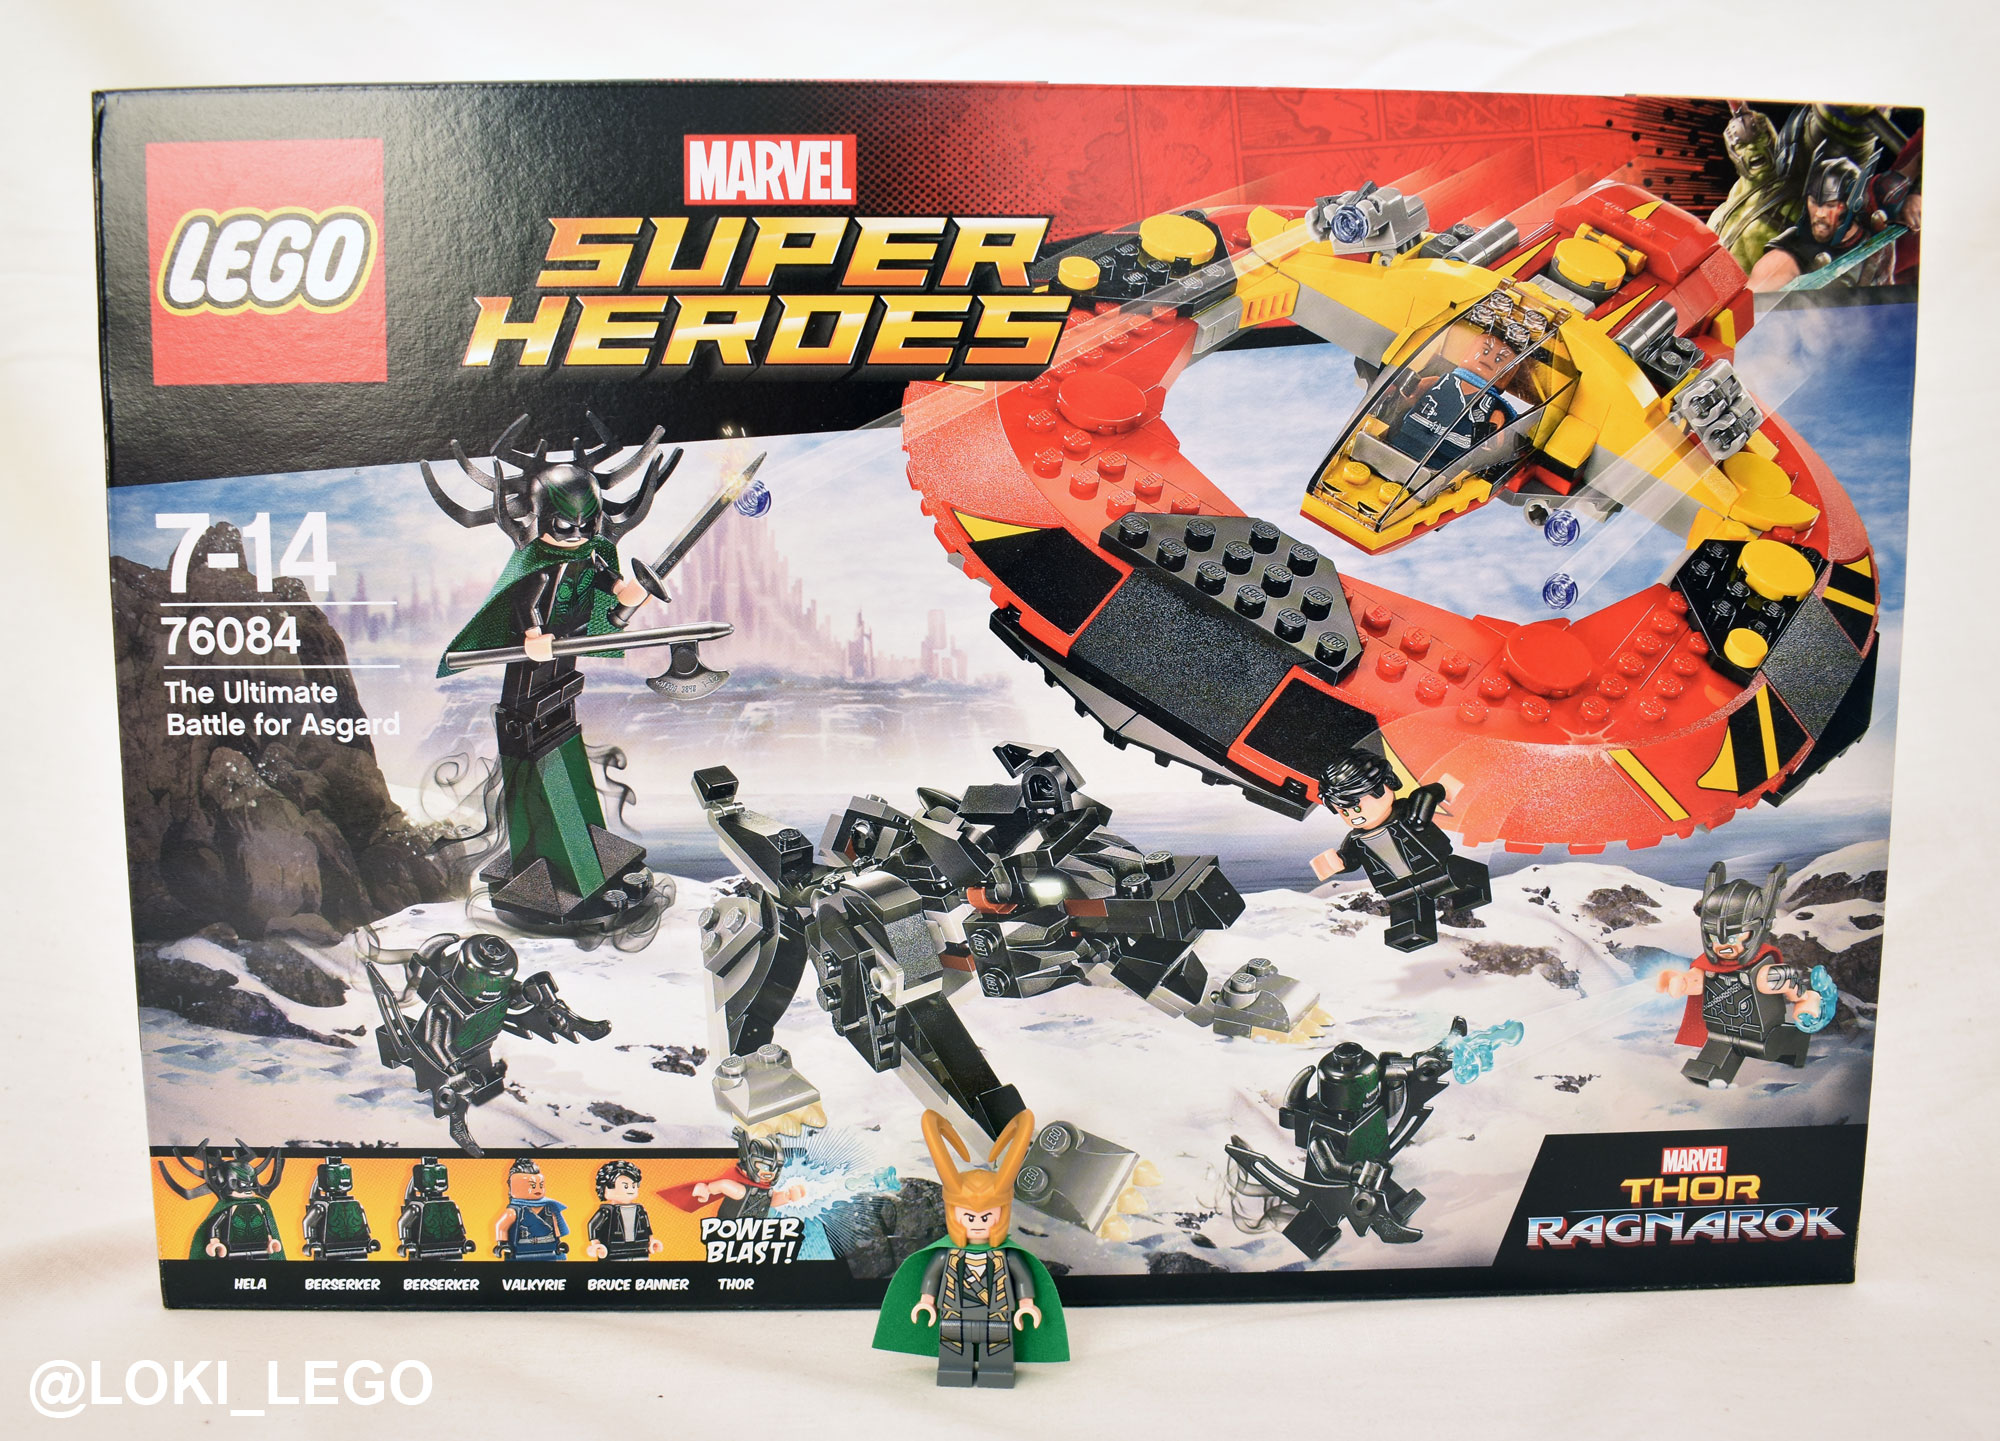 Lego Loki Reviews  The Ultimate Battle for Asgard LEGO Set   Future     Ultimate Battle for Asgard LEGO set